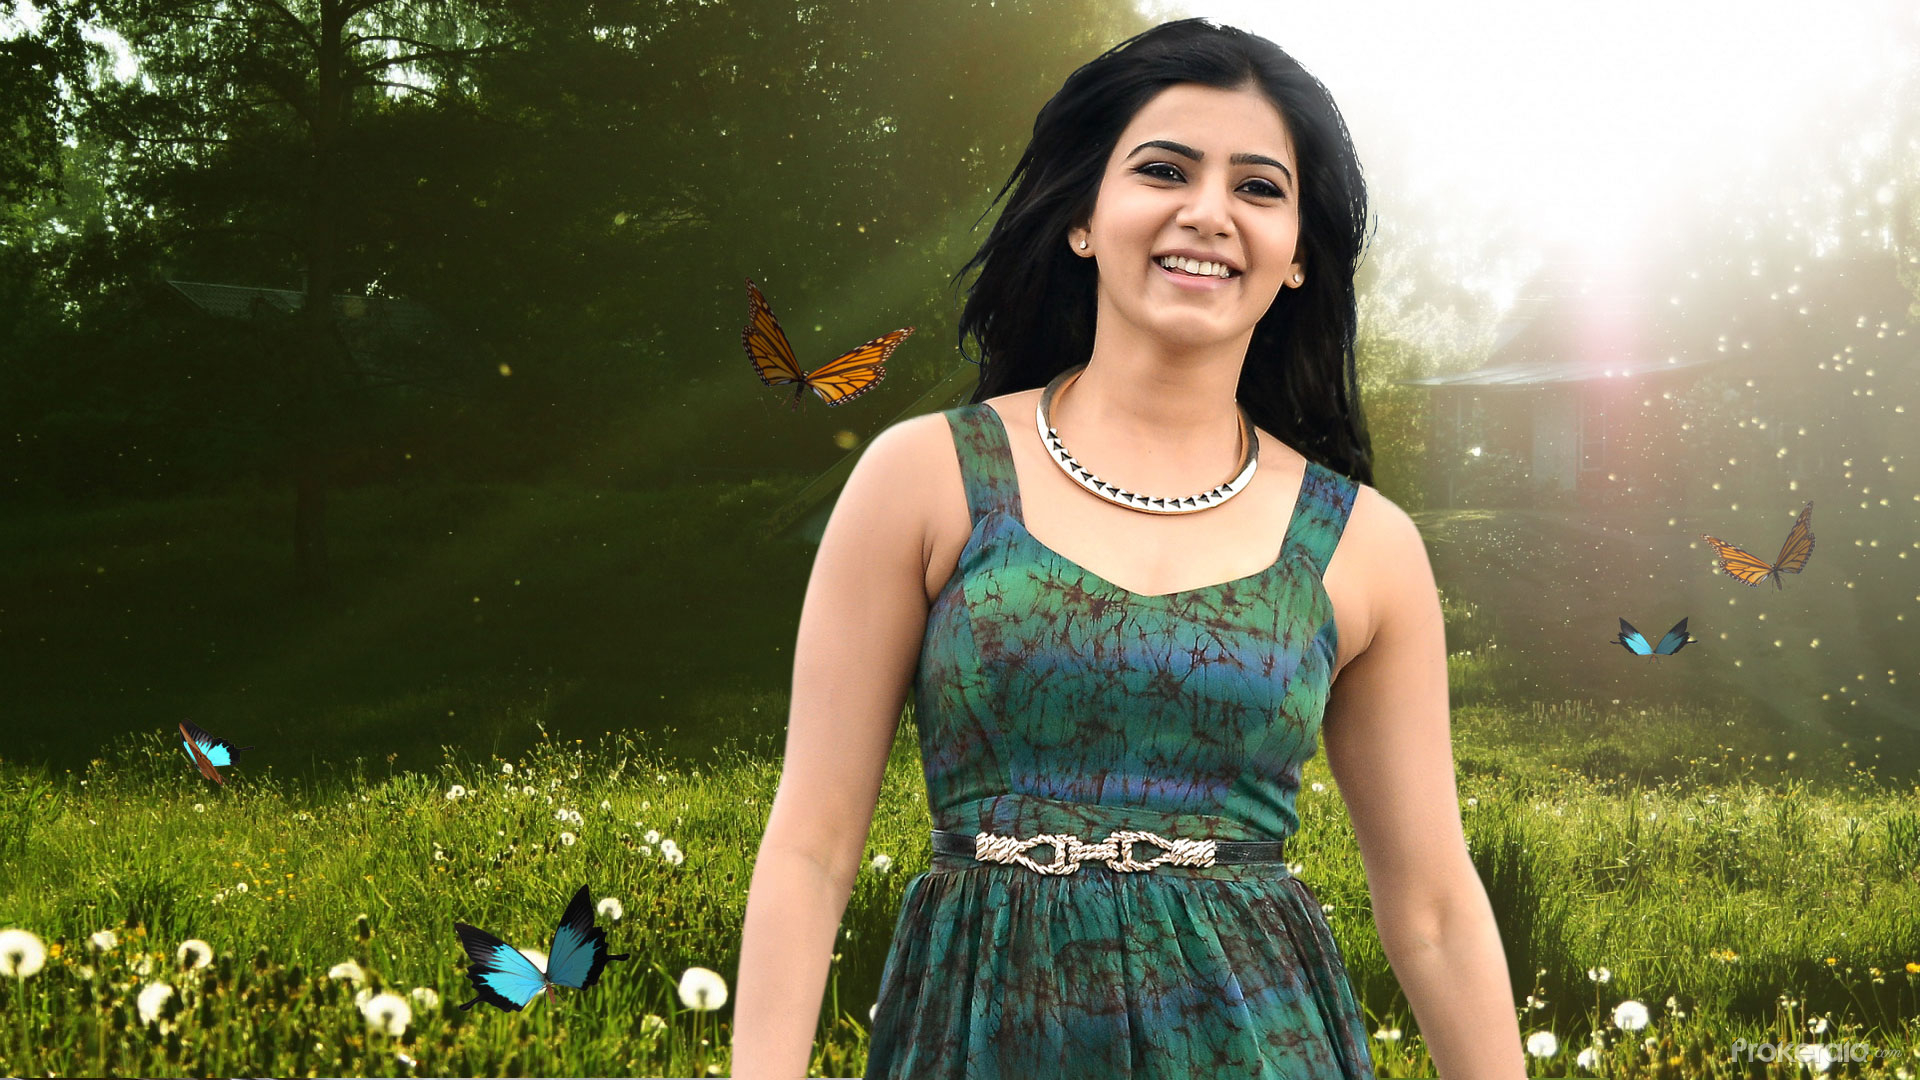 samantha hd wallpaper for mobile and desktop